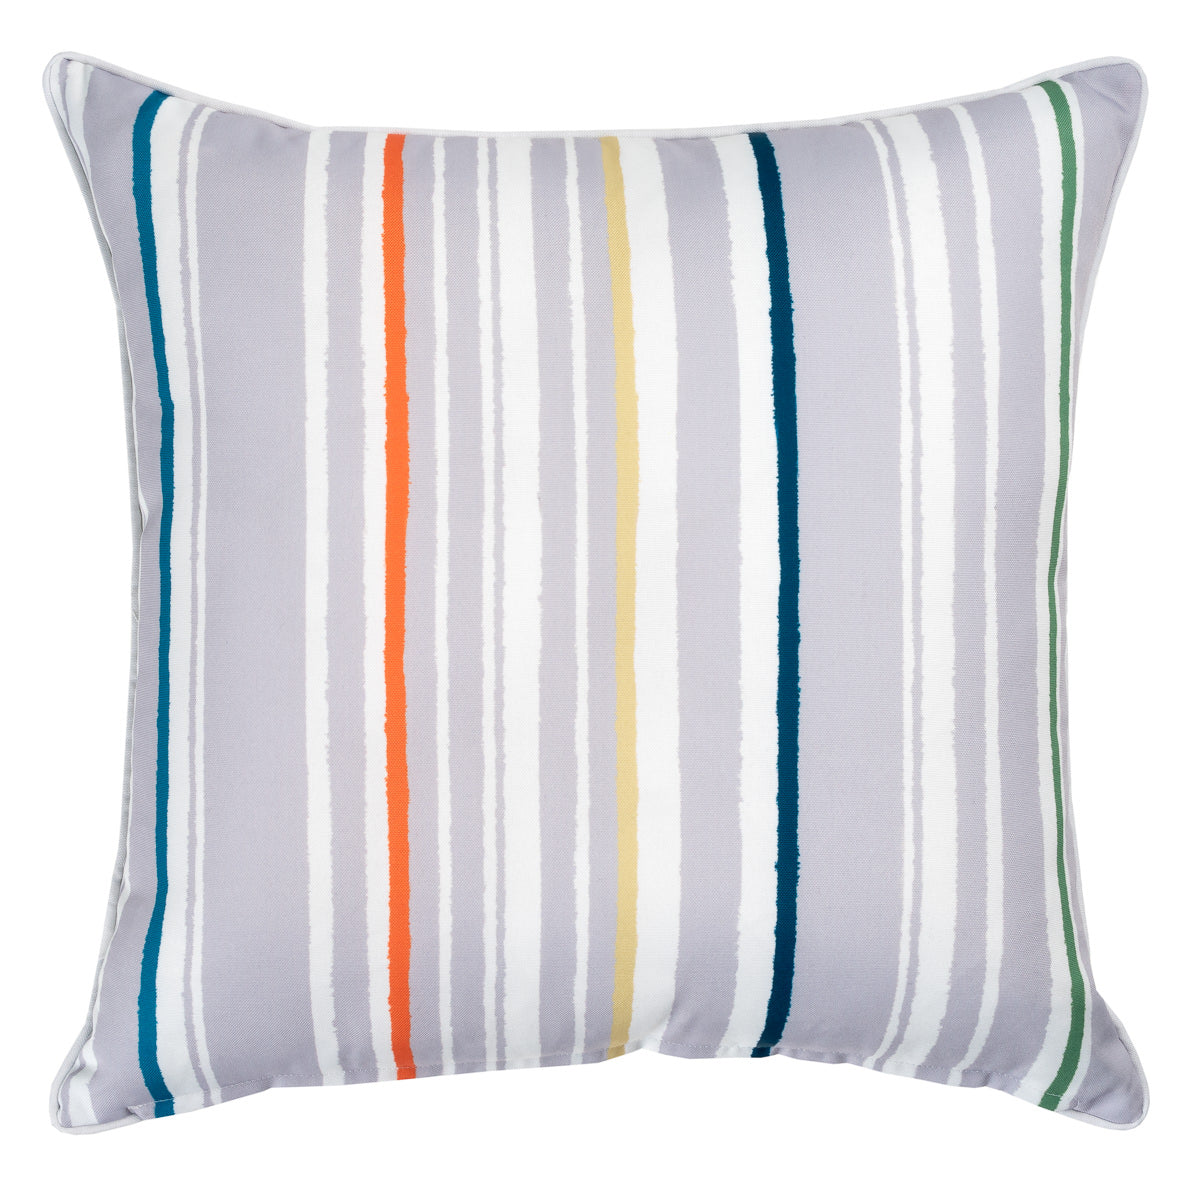 Accessories - Scatter Cushions